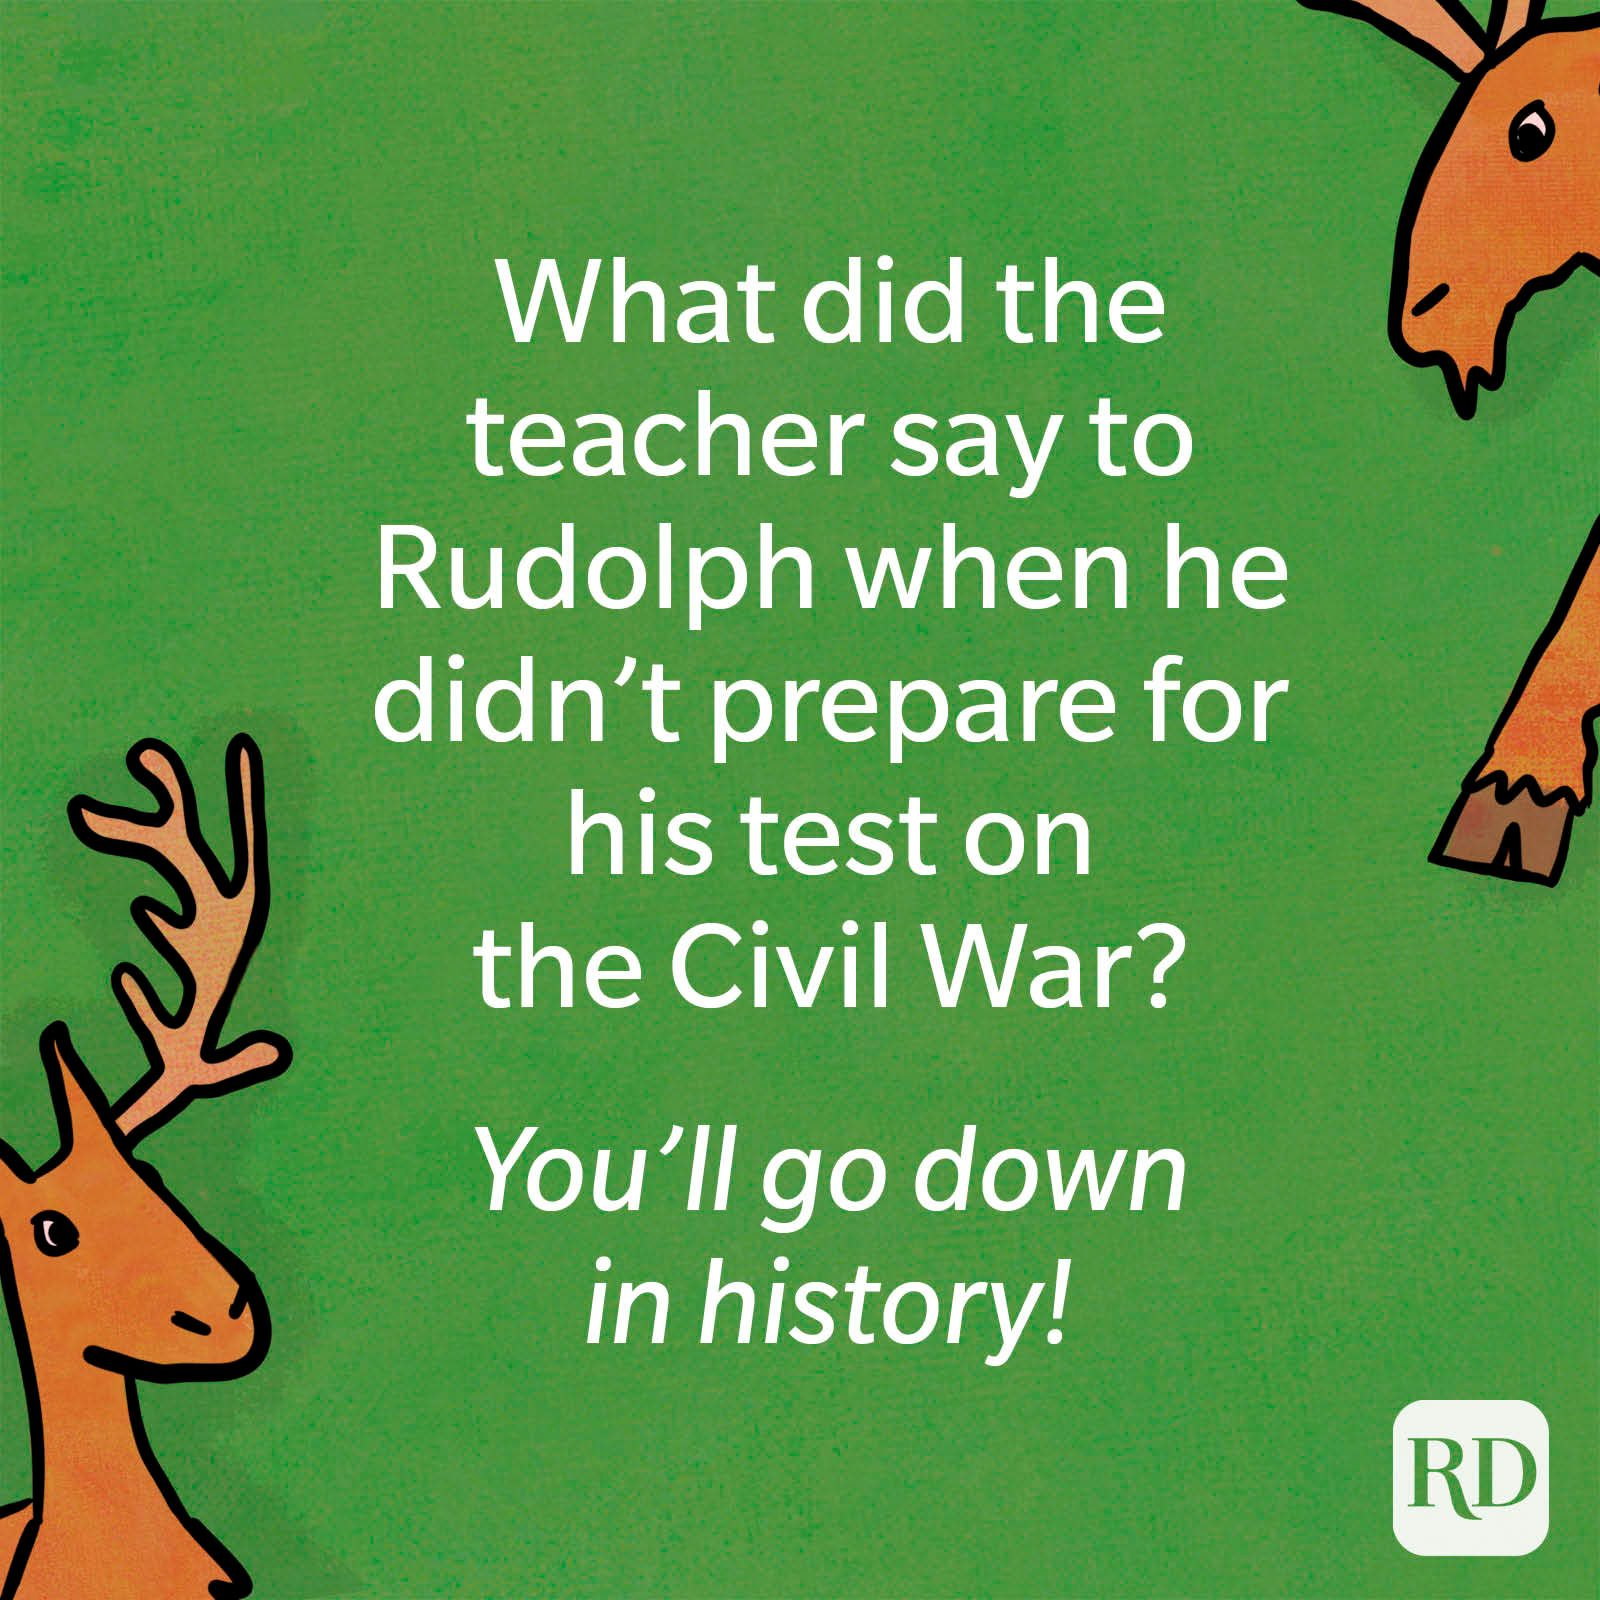 What did the teacher say to Rudolph when he didn't prepare for his test on the Civil War?